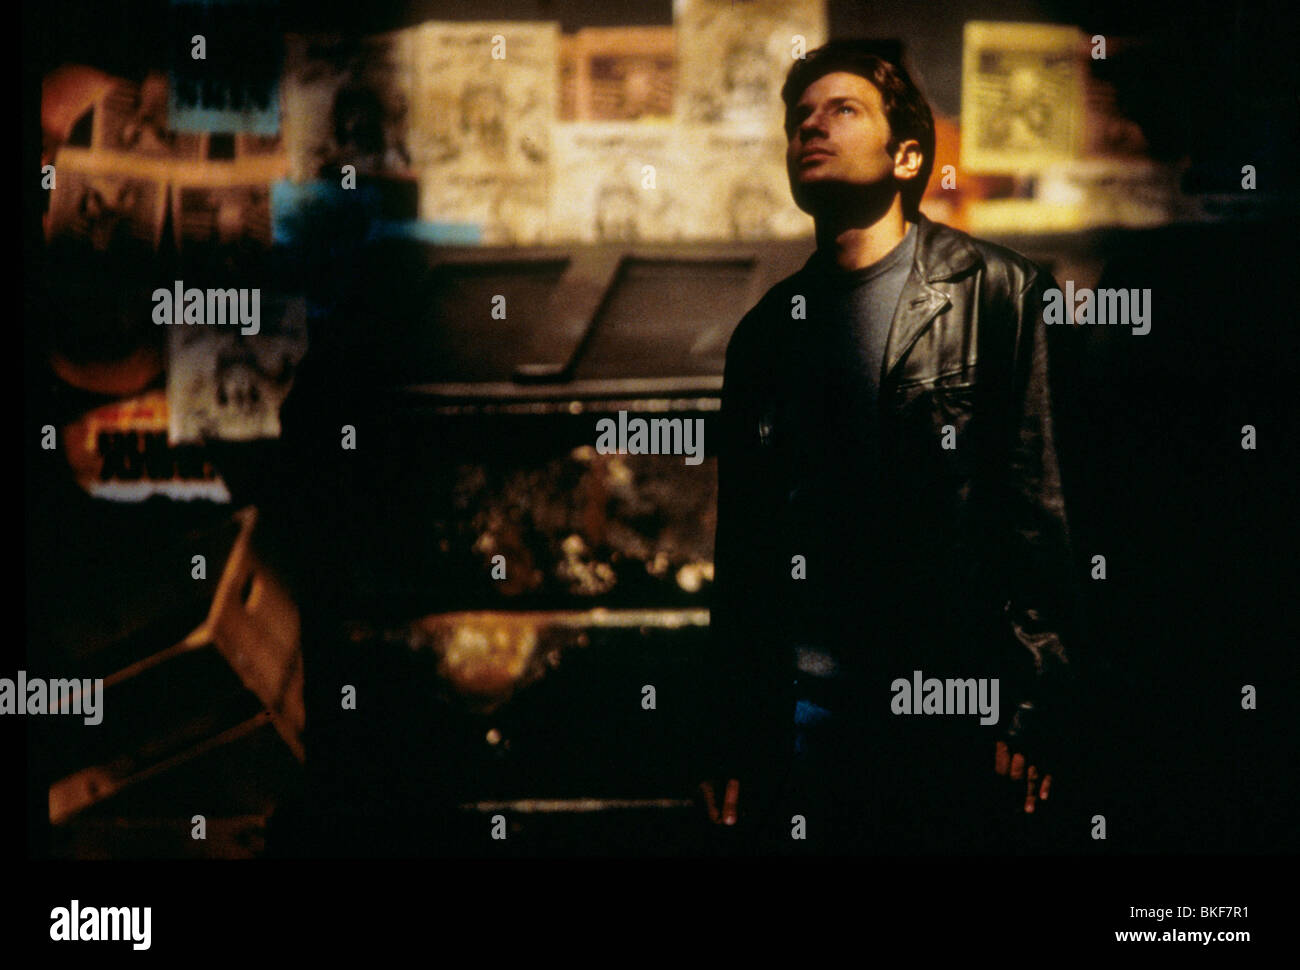 X-FILES: THE MOVIE (1998) DAVID DUCHOVNY XFM 115 Stock Photo